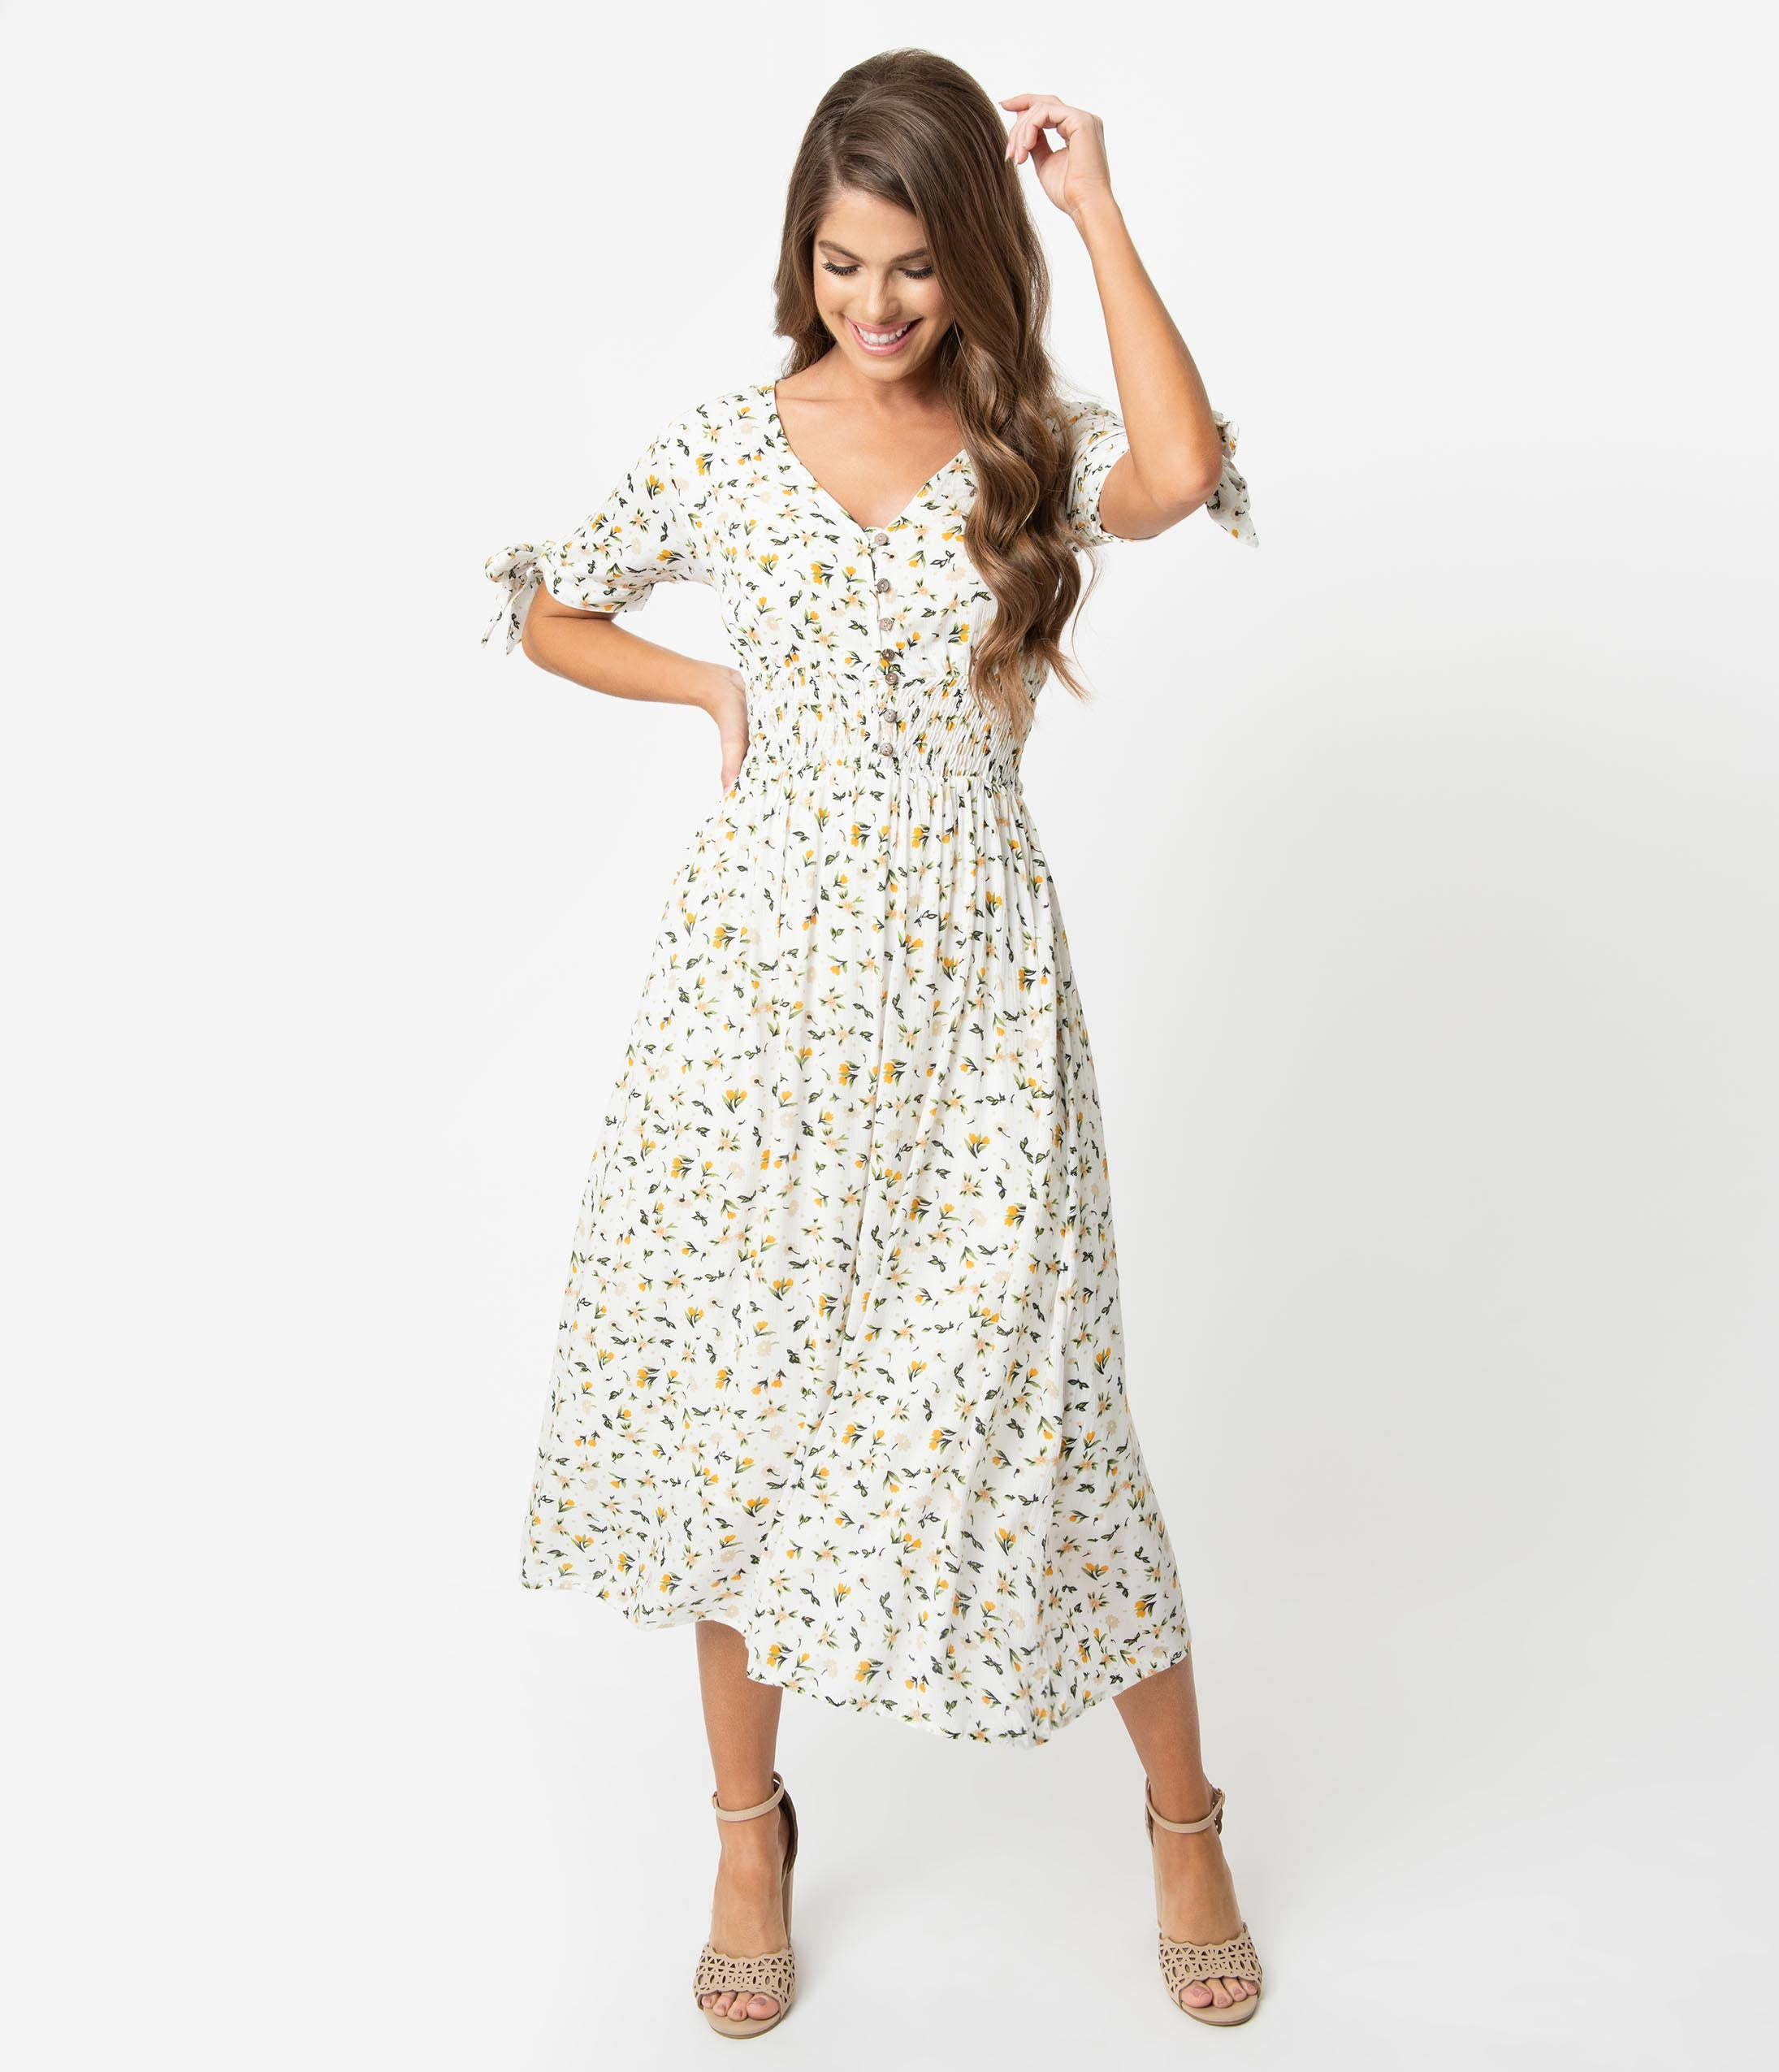 8acb4df74947 1970s Style Ivory & Yellow Delicate Floral Print Short Sleeve Midi Dress